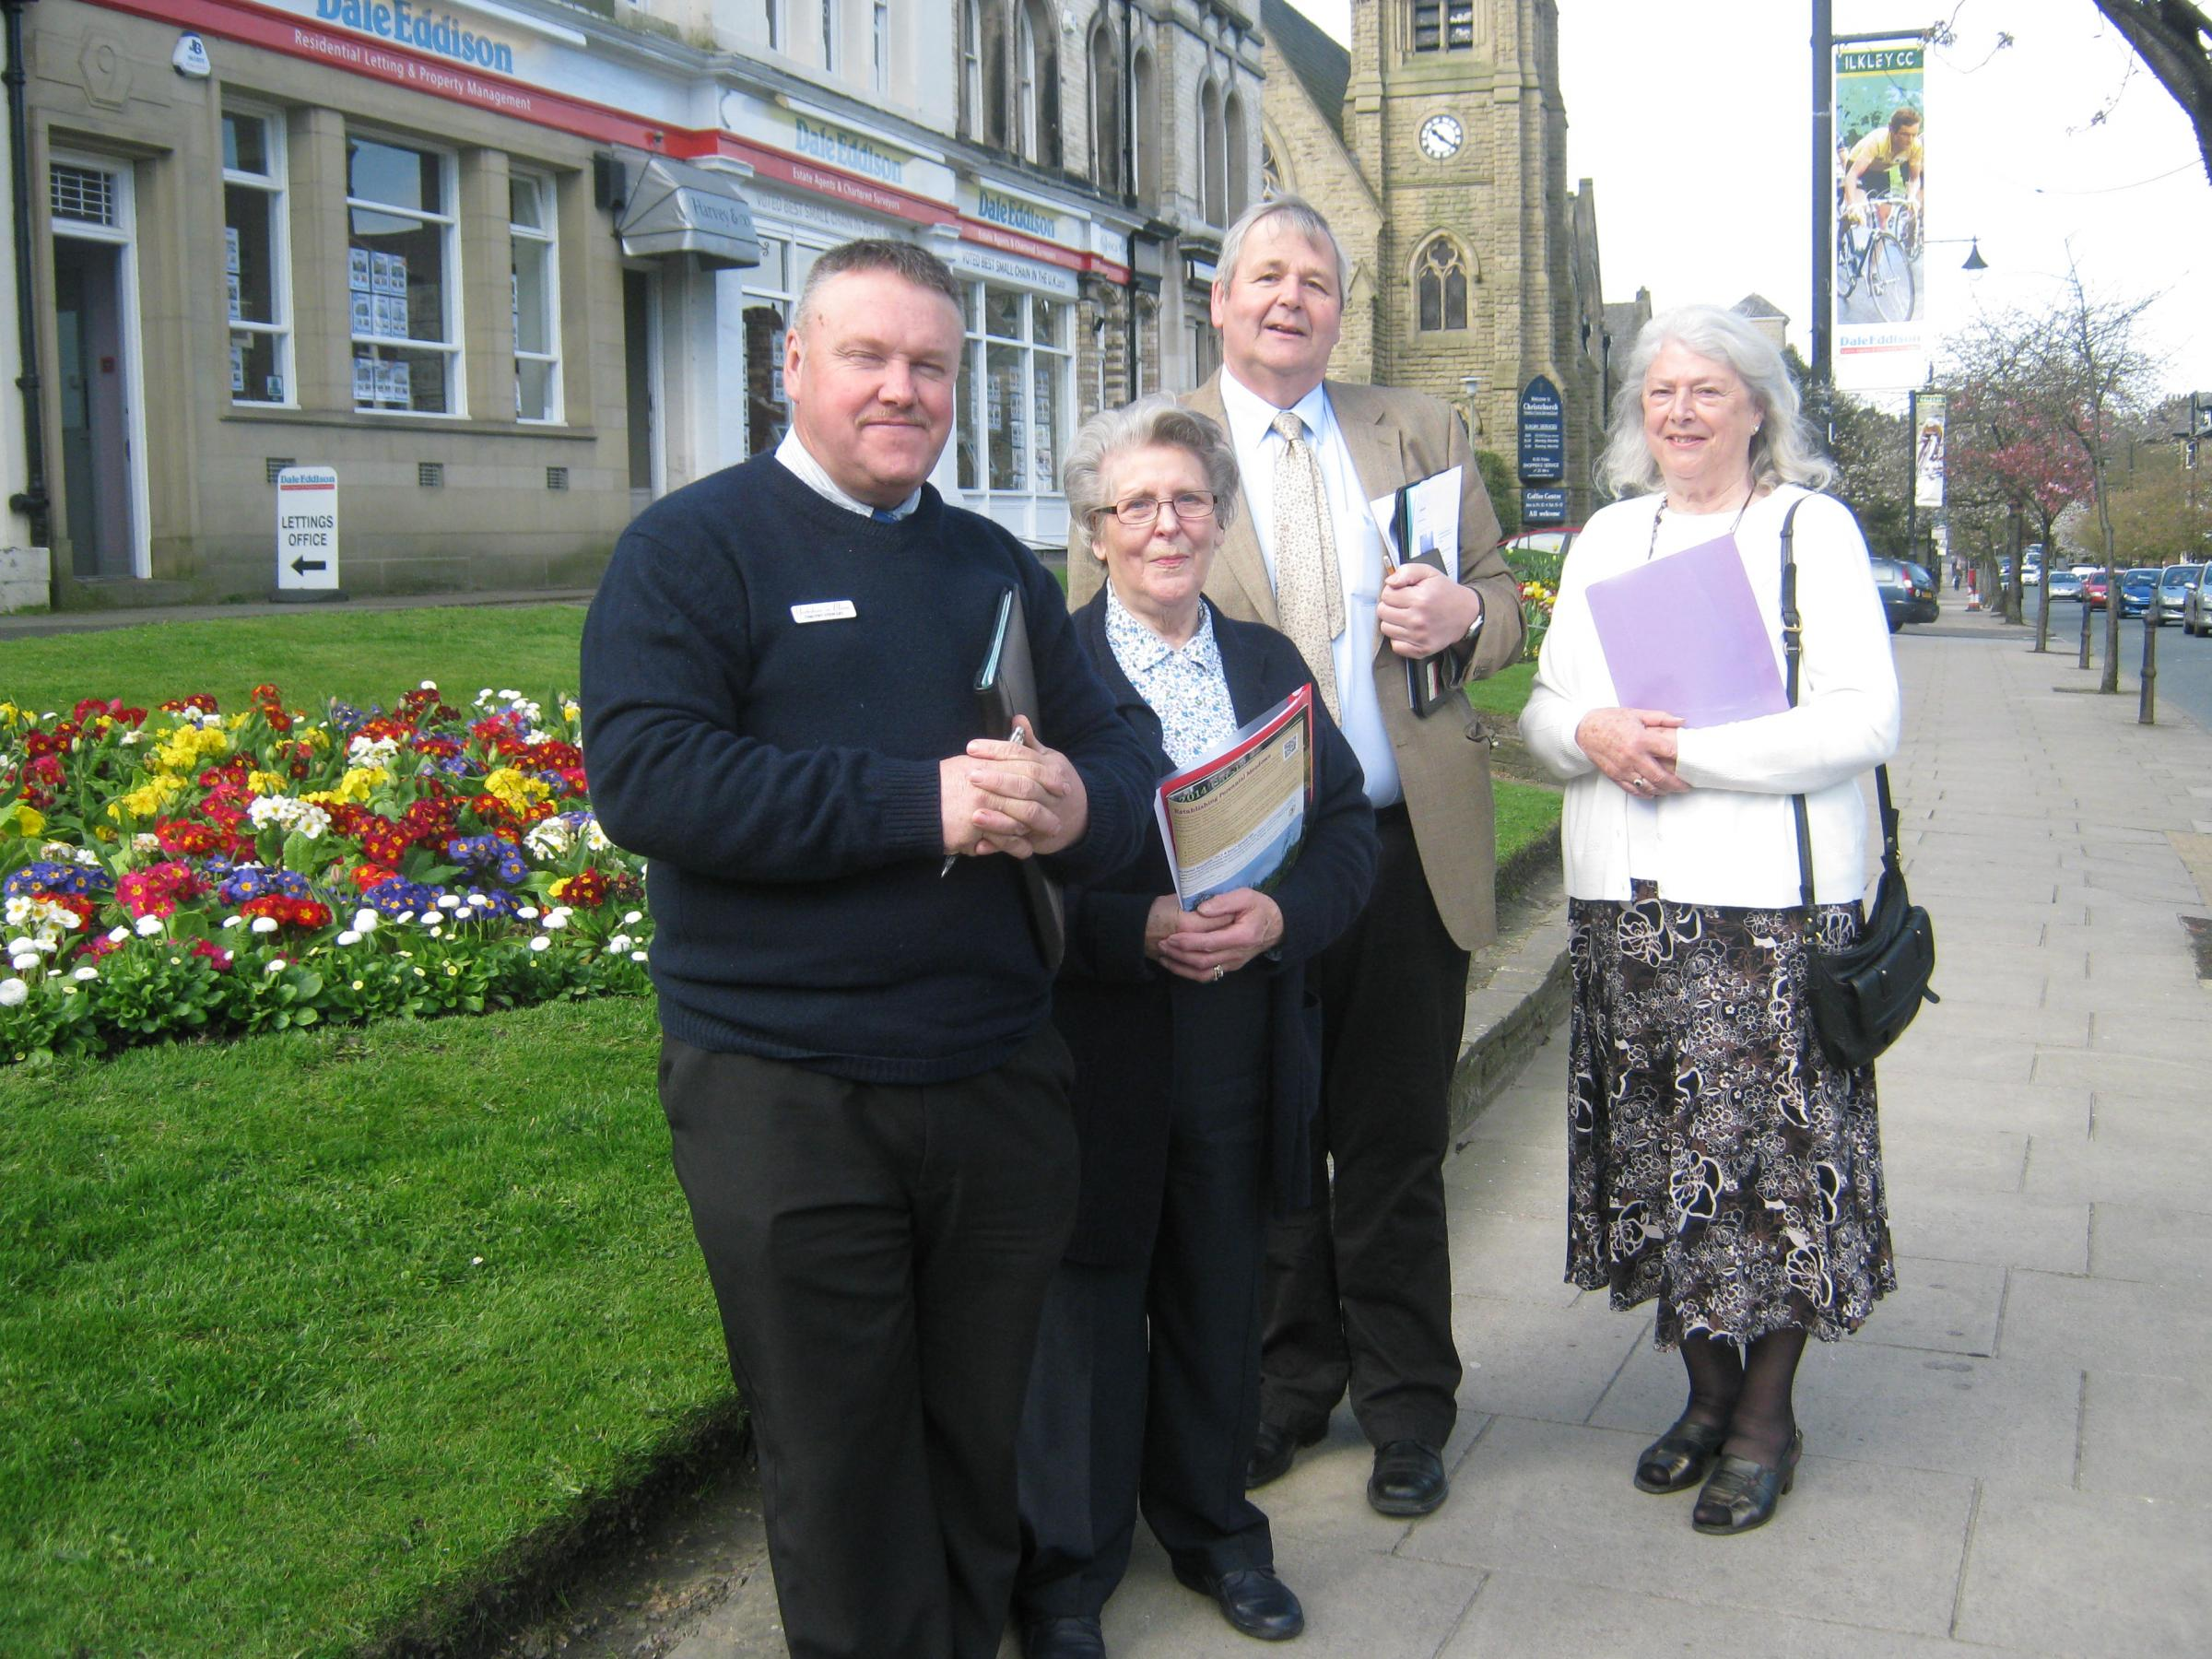 Yorkshire in Bloom judges Timothy Stewart, left, and Brendan Mowforth, second from right, with Vera Varley and Kate Brown of Ilkley in Bloom